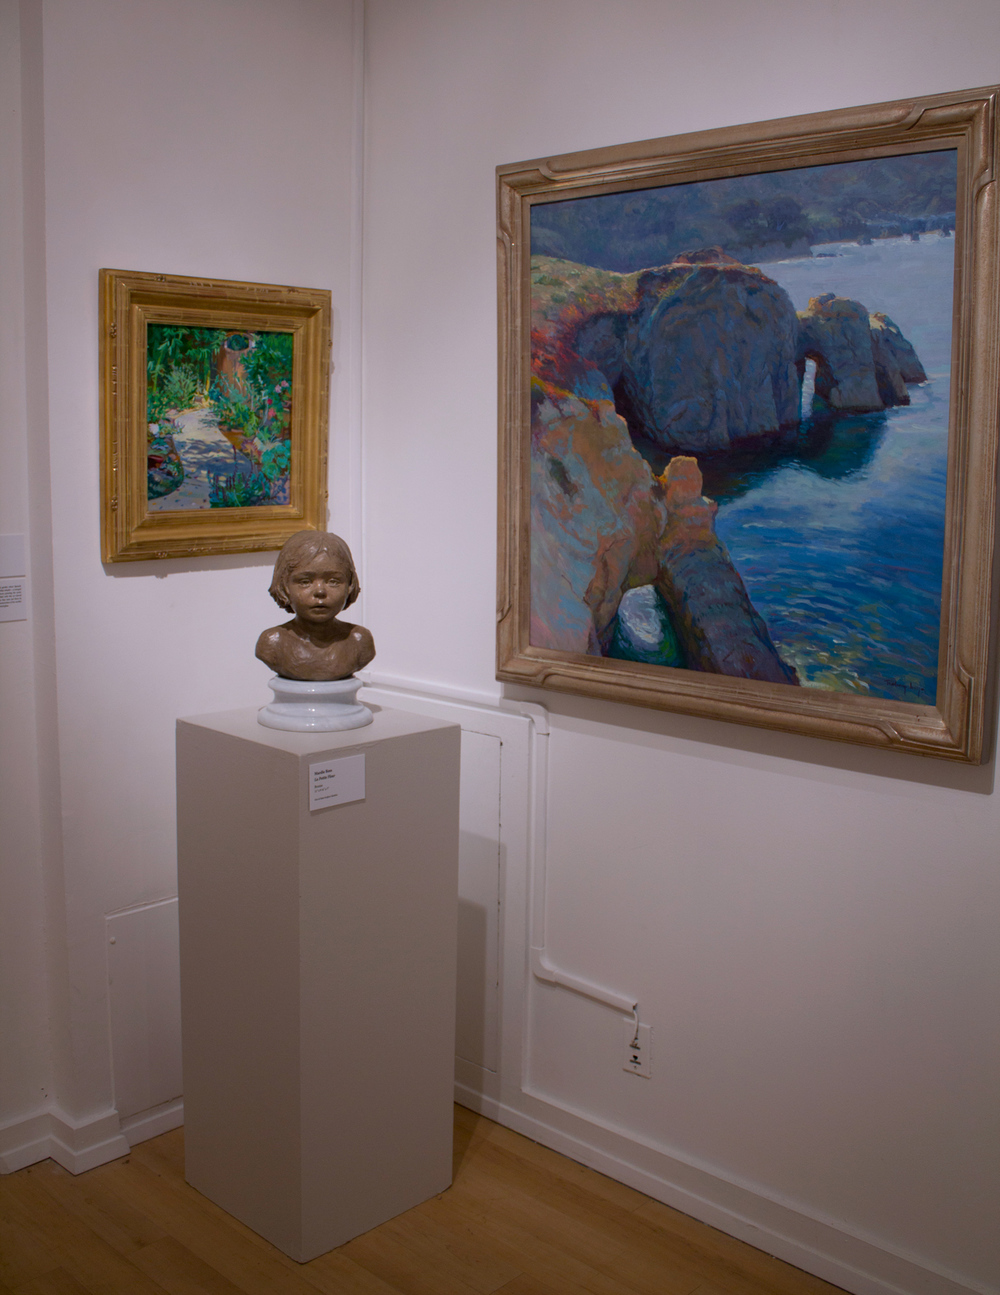 """La Petite Fleur"" shown next to two landscape paintings."